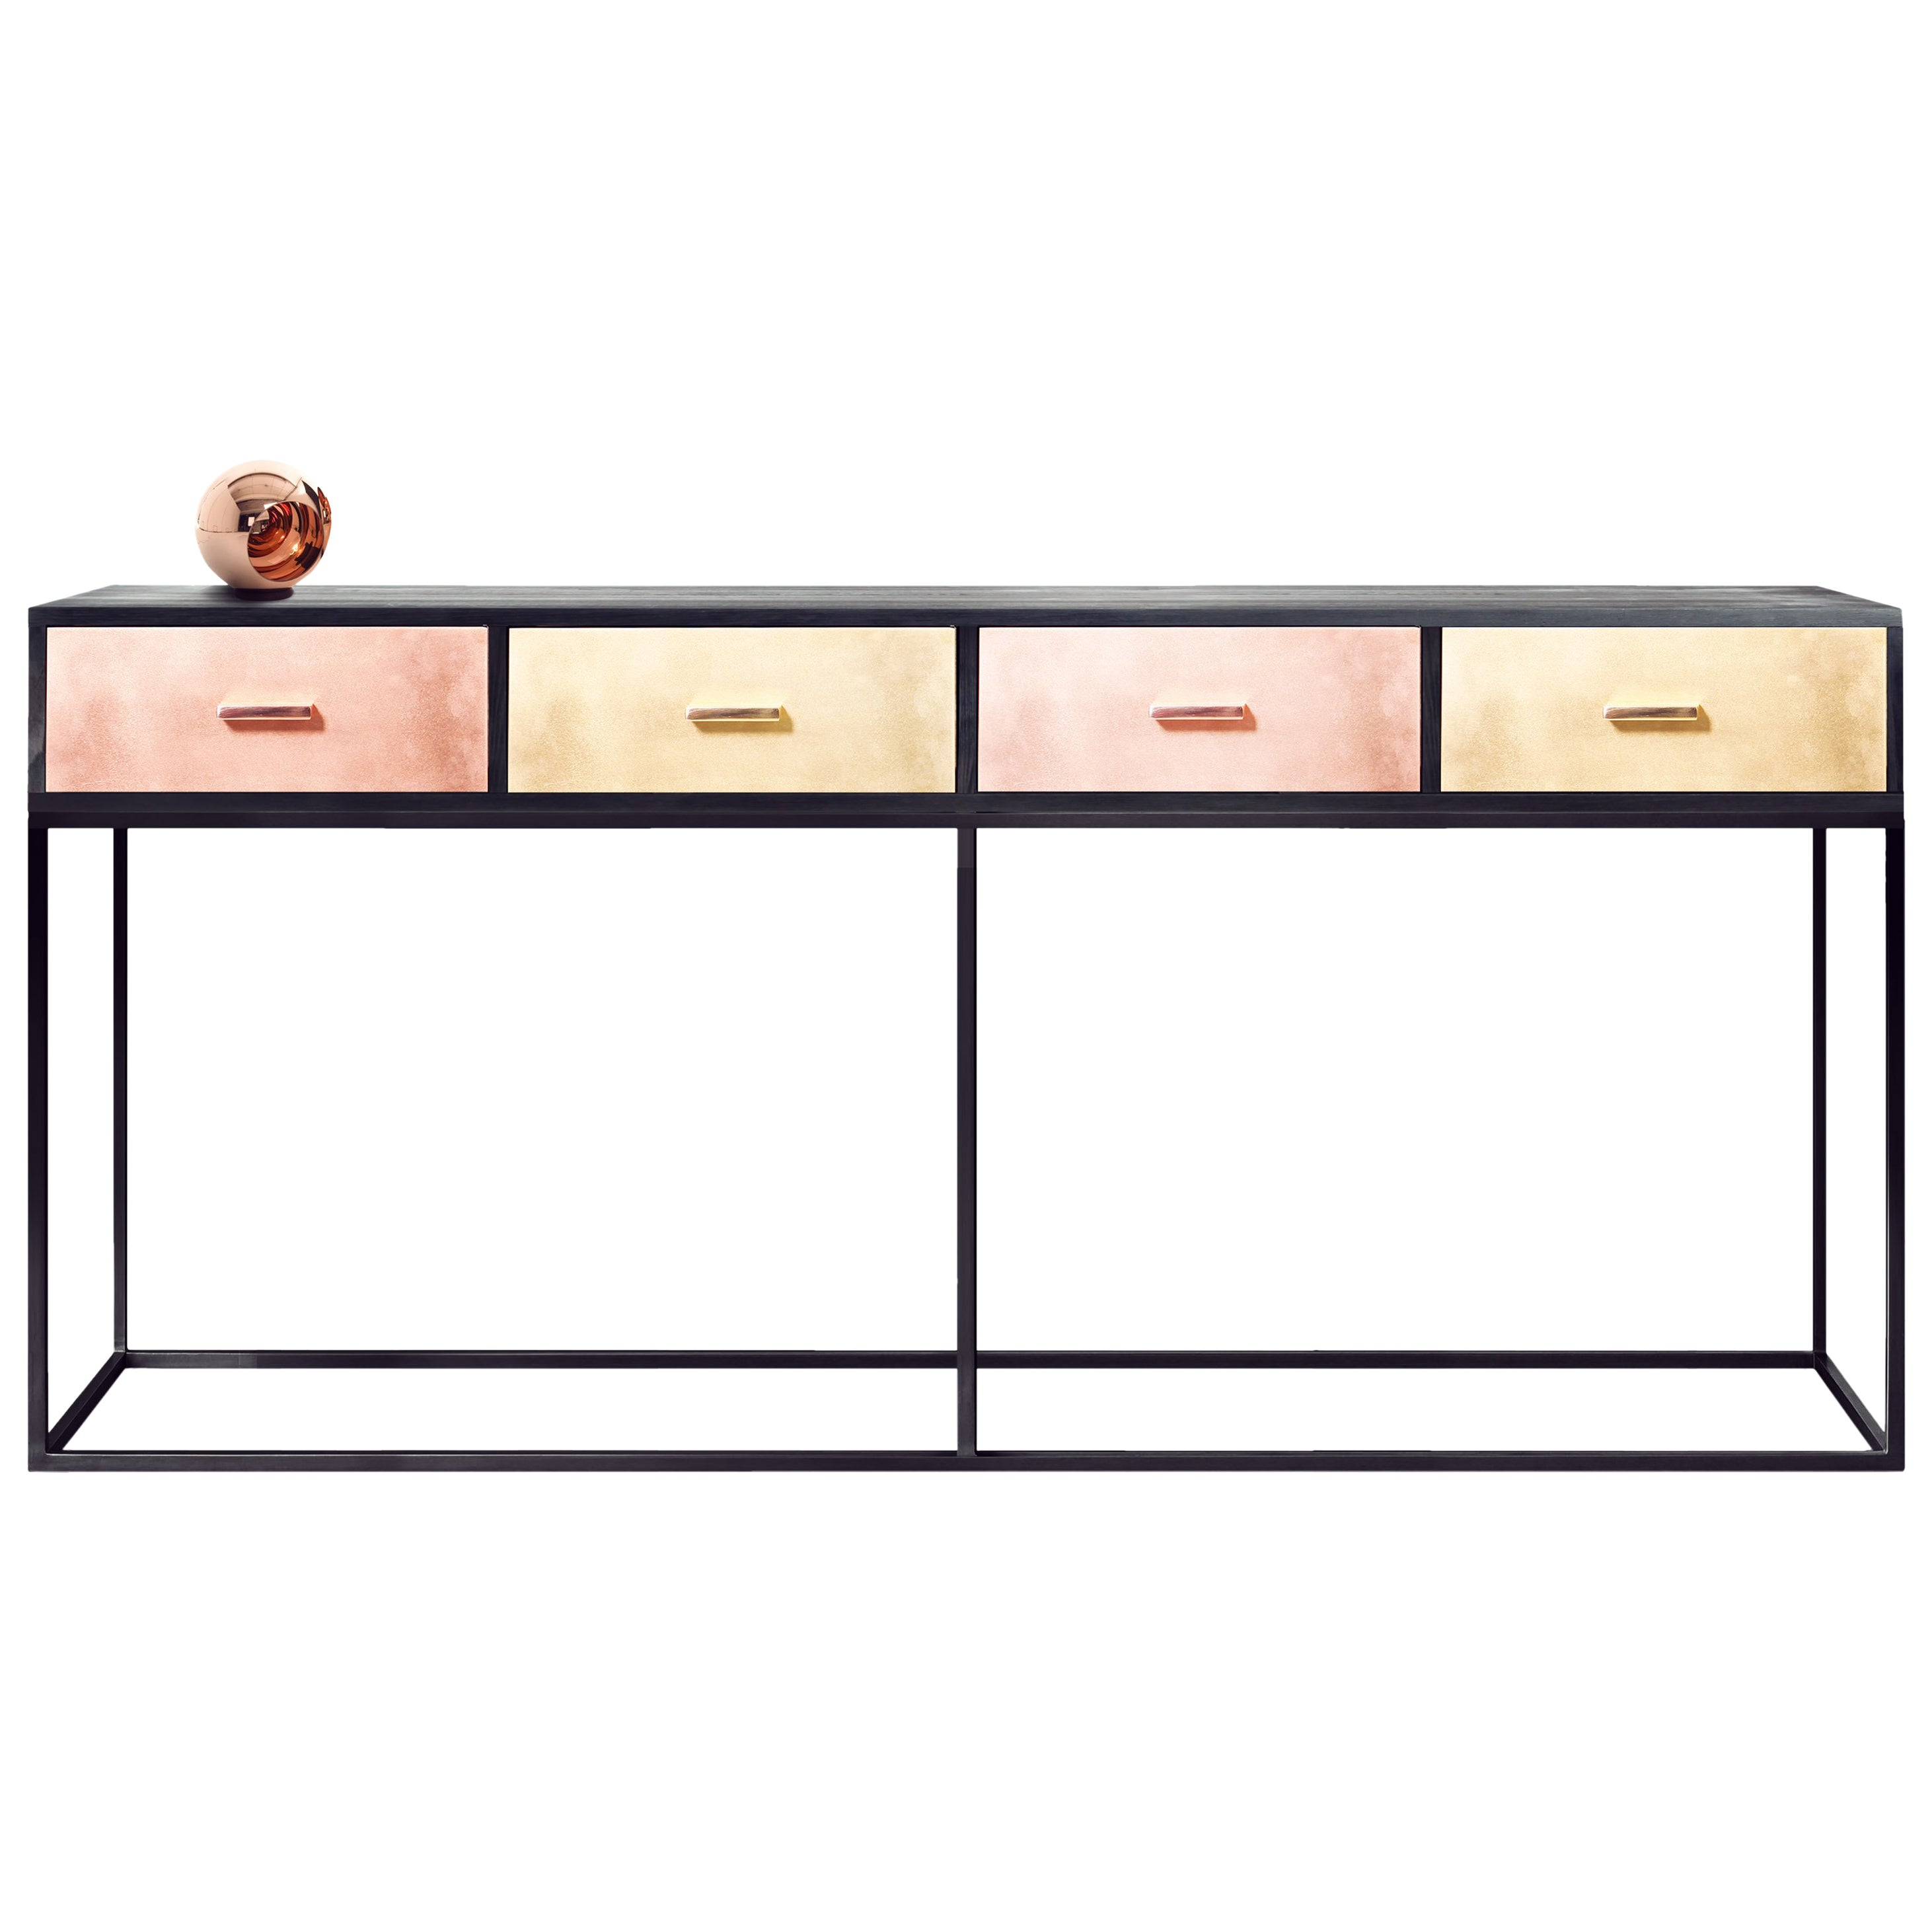 Contemporary Reykjavik Console Table in Brass, Bronze and Copper